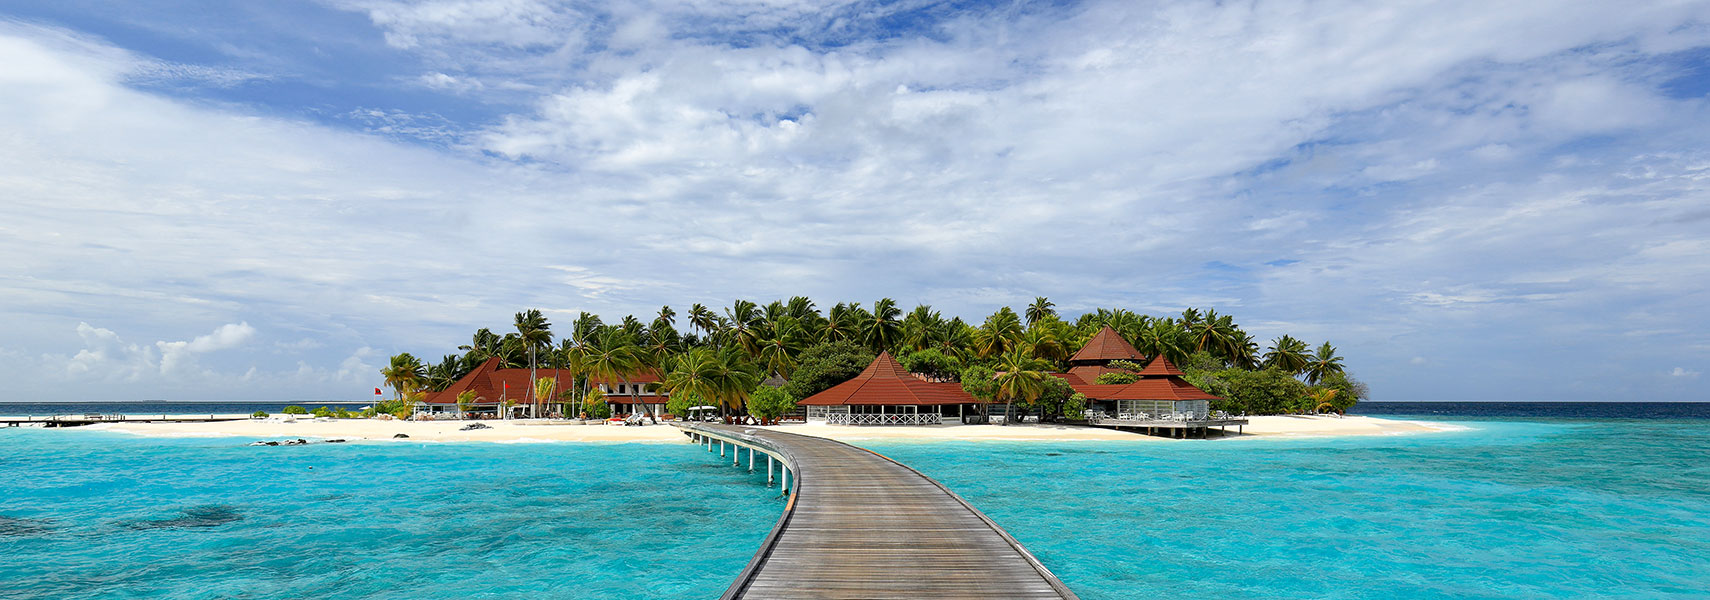 Thudufushi Beach and Water Villas, Ari Atoll, Maldives